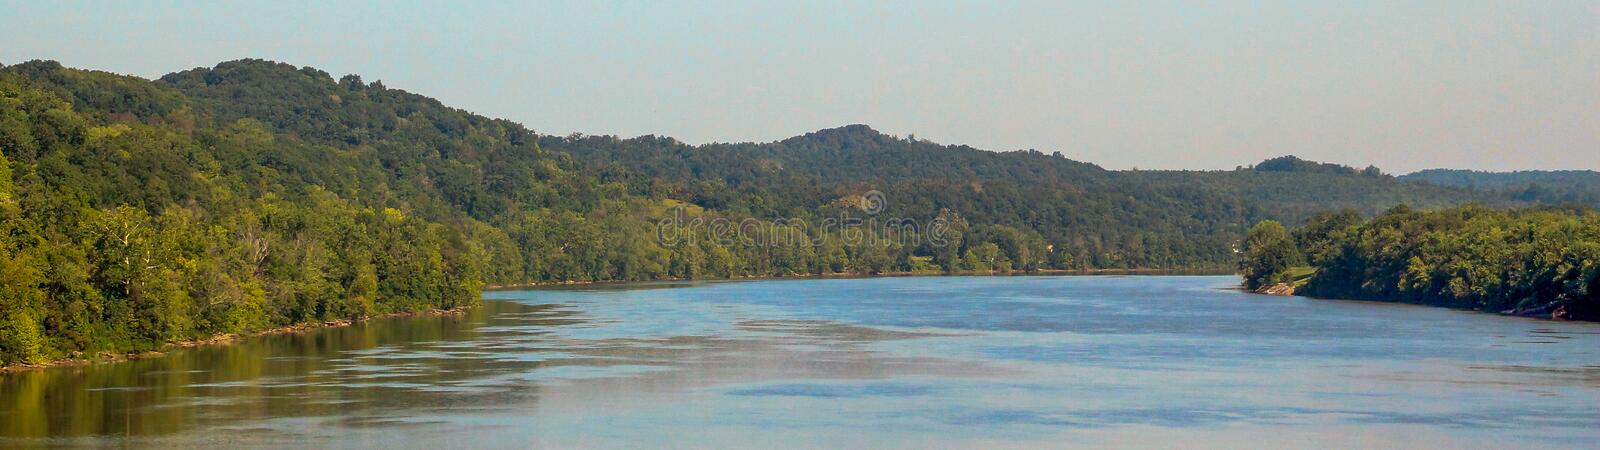 Ohio River Panoramic. The Ohio River in the summer with trees banking the sides and the water smooth royalty free stock photos